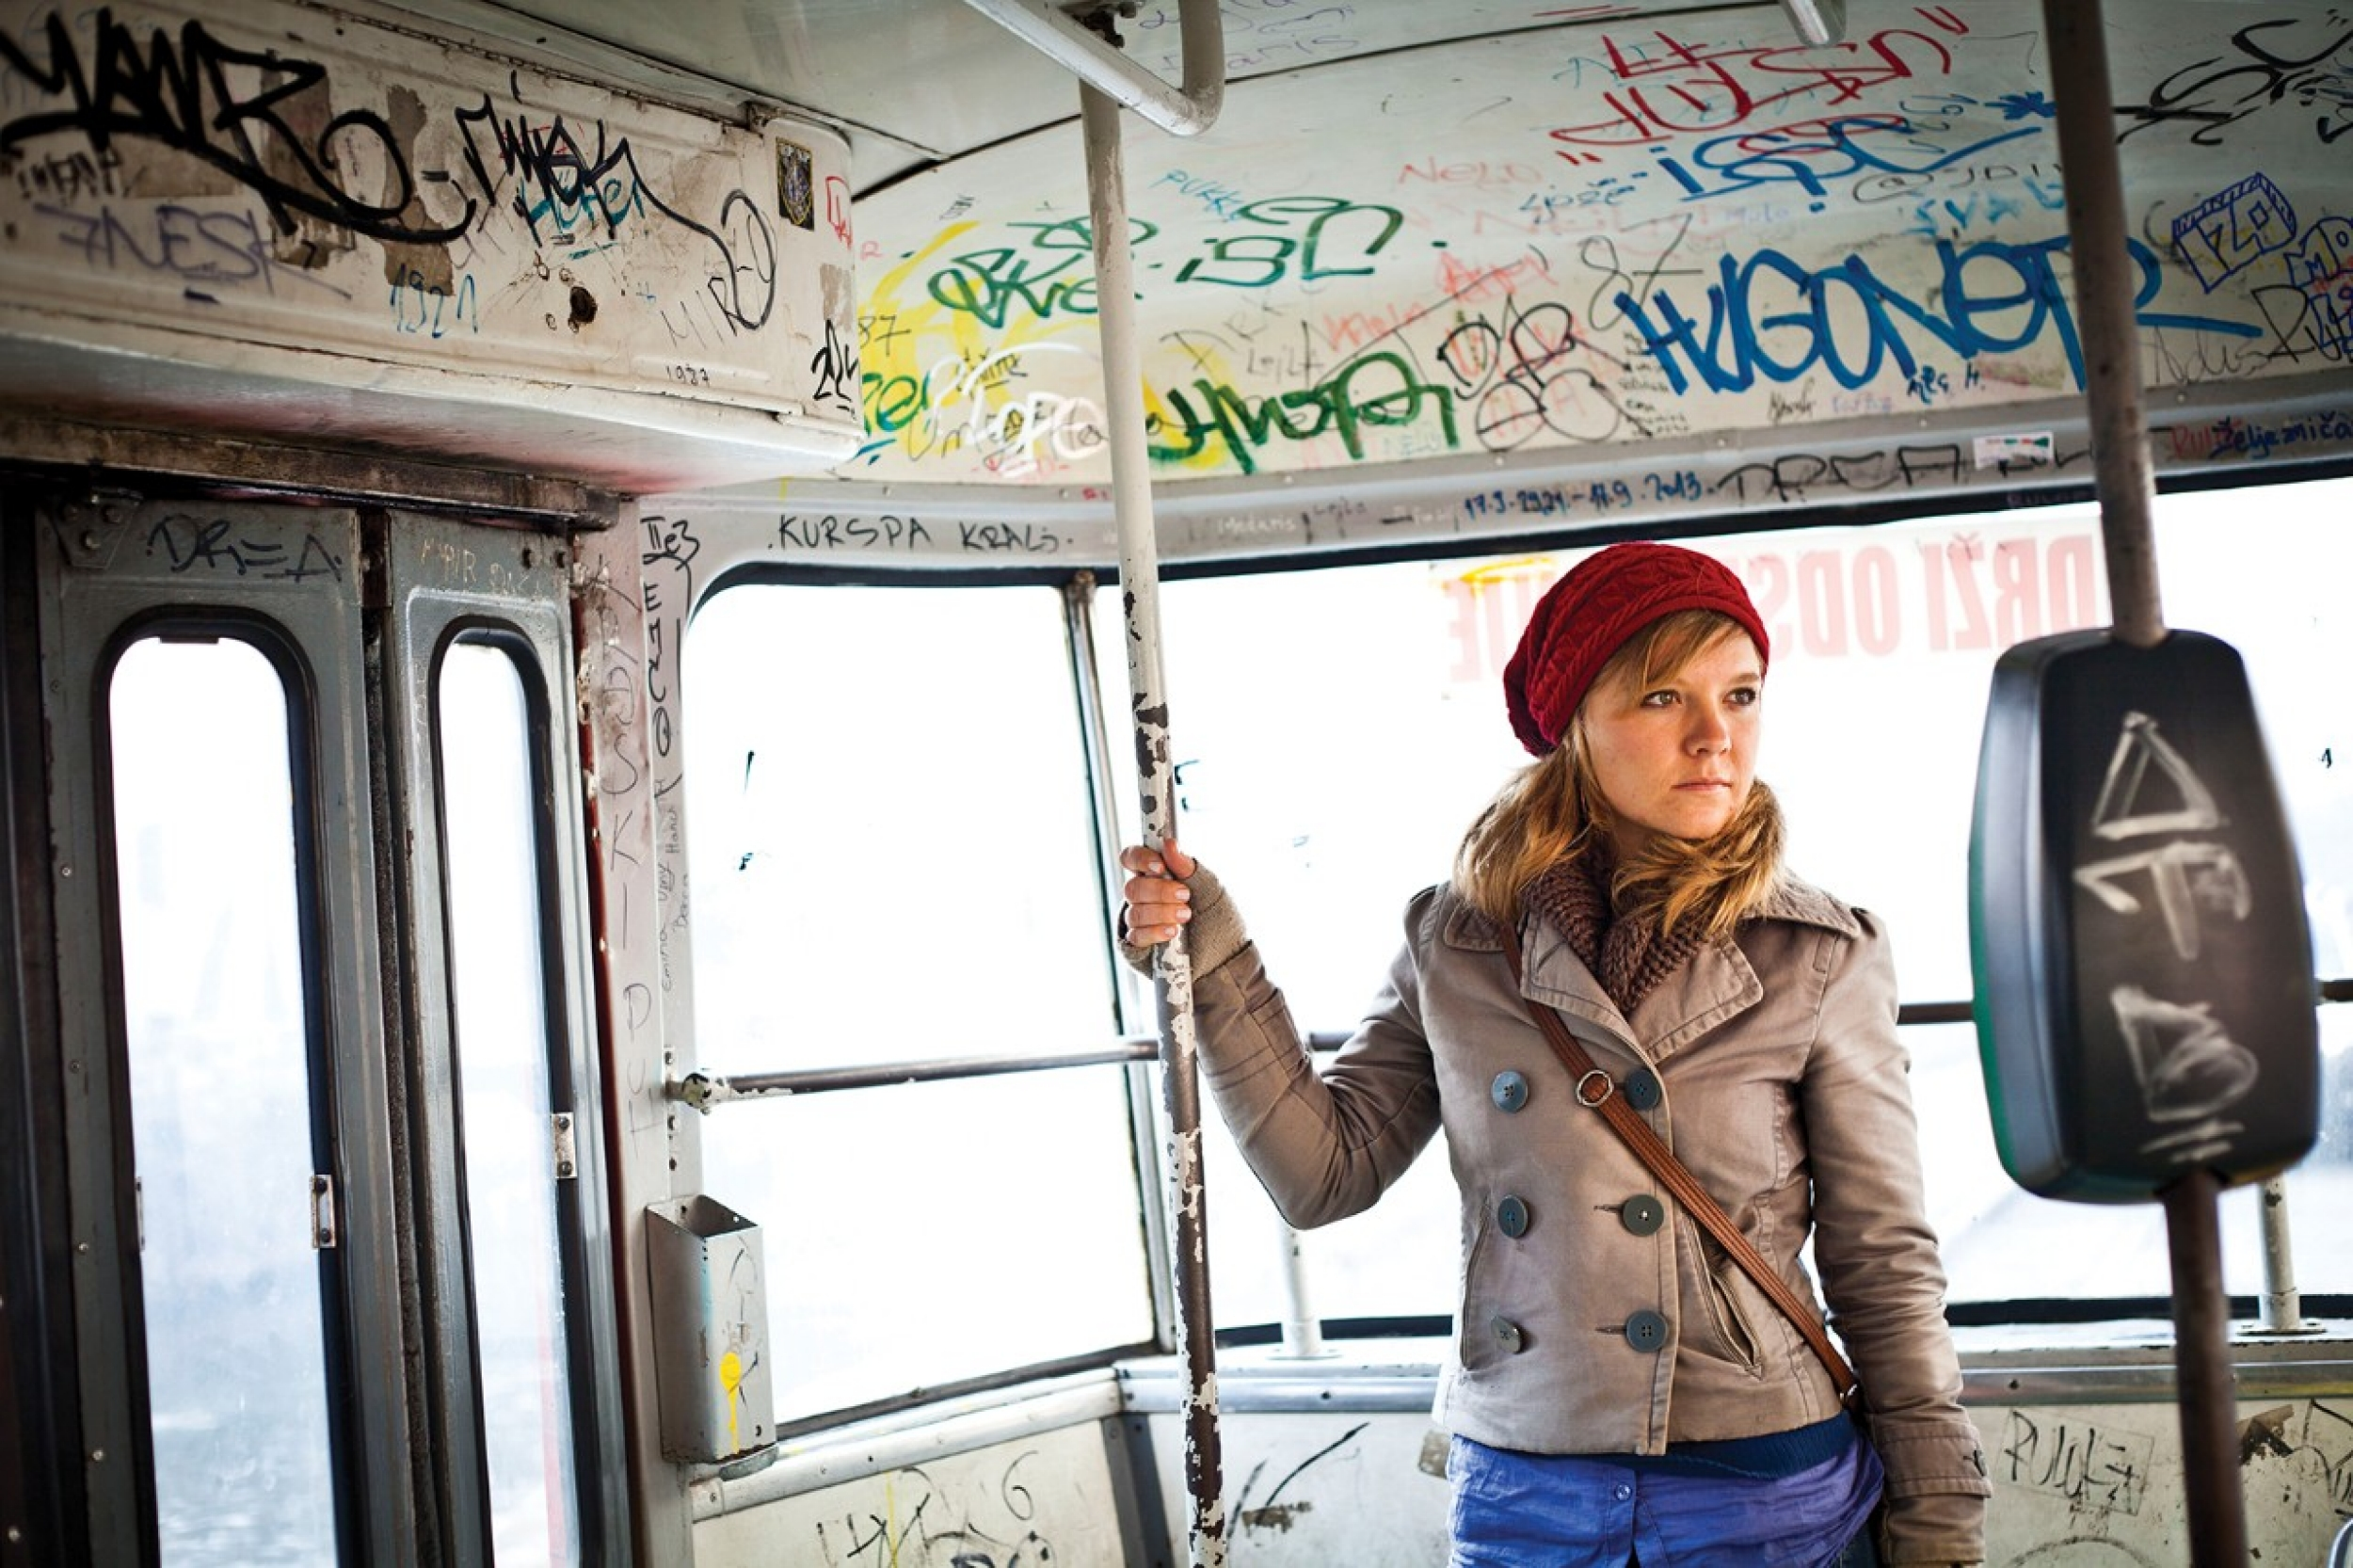 University of Cincinnati student Natalie Bullock rides public transportation in Bosnia.